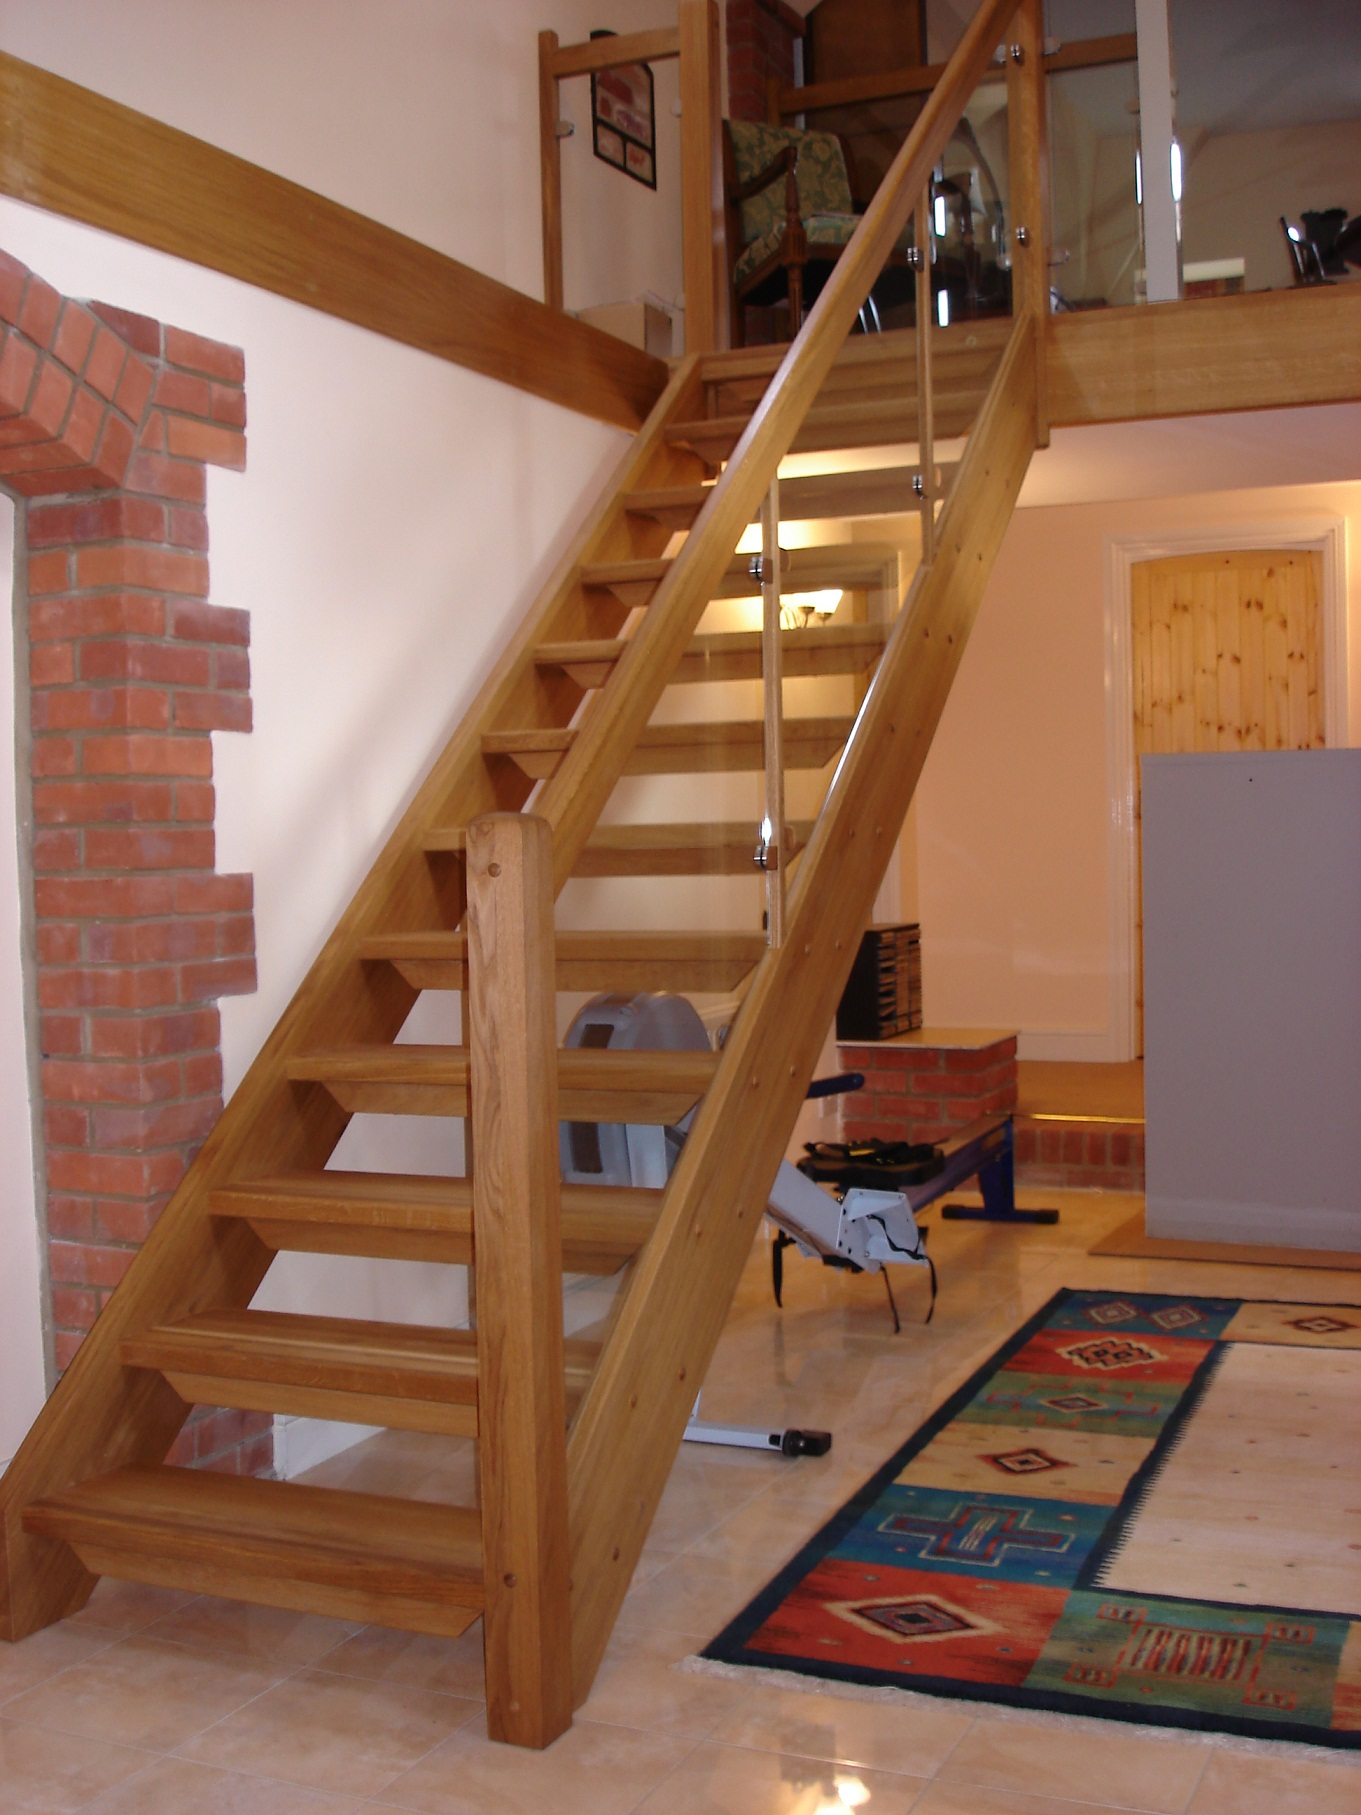 Bespoke Wooden Staircase - Alton, Hampshire | Timber Stair ...